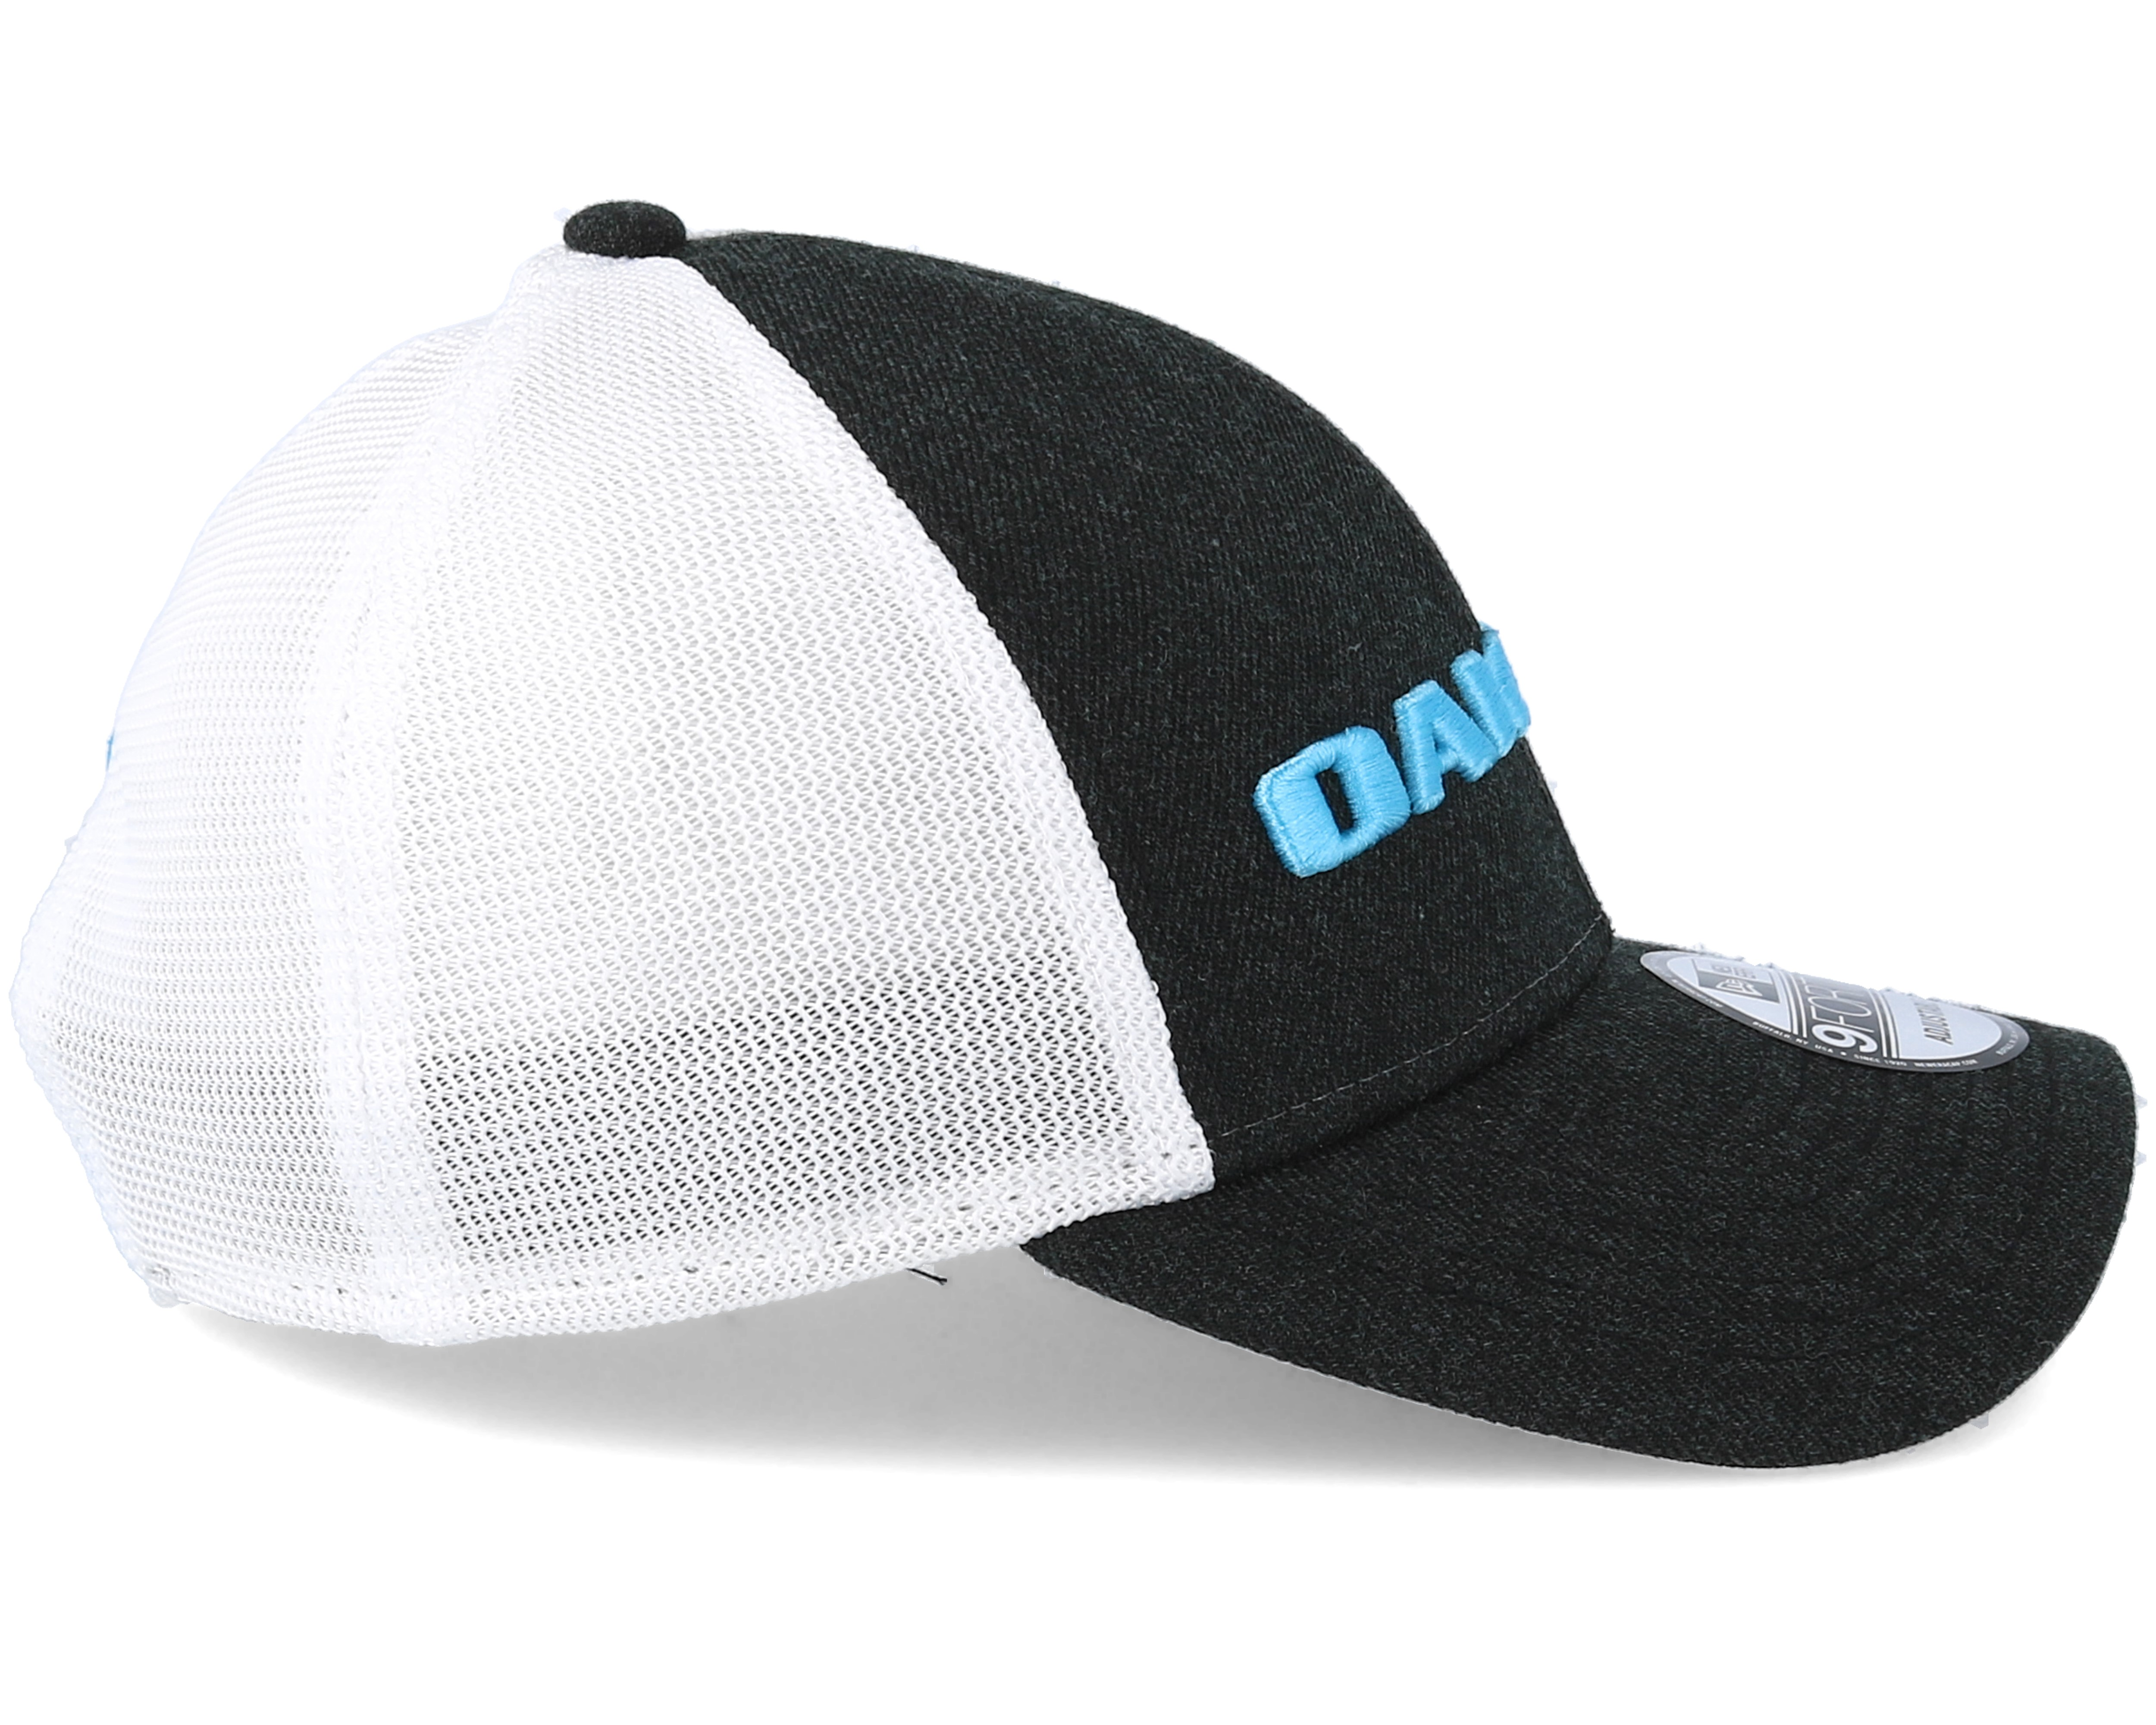 new era hat dating Since 1994, the style to beat, the new era 59fifty, has been the official cap of major league baseball further licenses for nba, nhl and different comics make the brand an unbeatable trendsetter when it comes to stylish baseball caps.